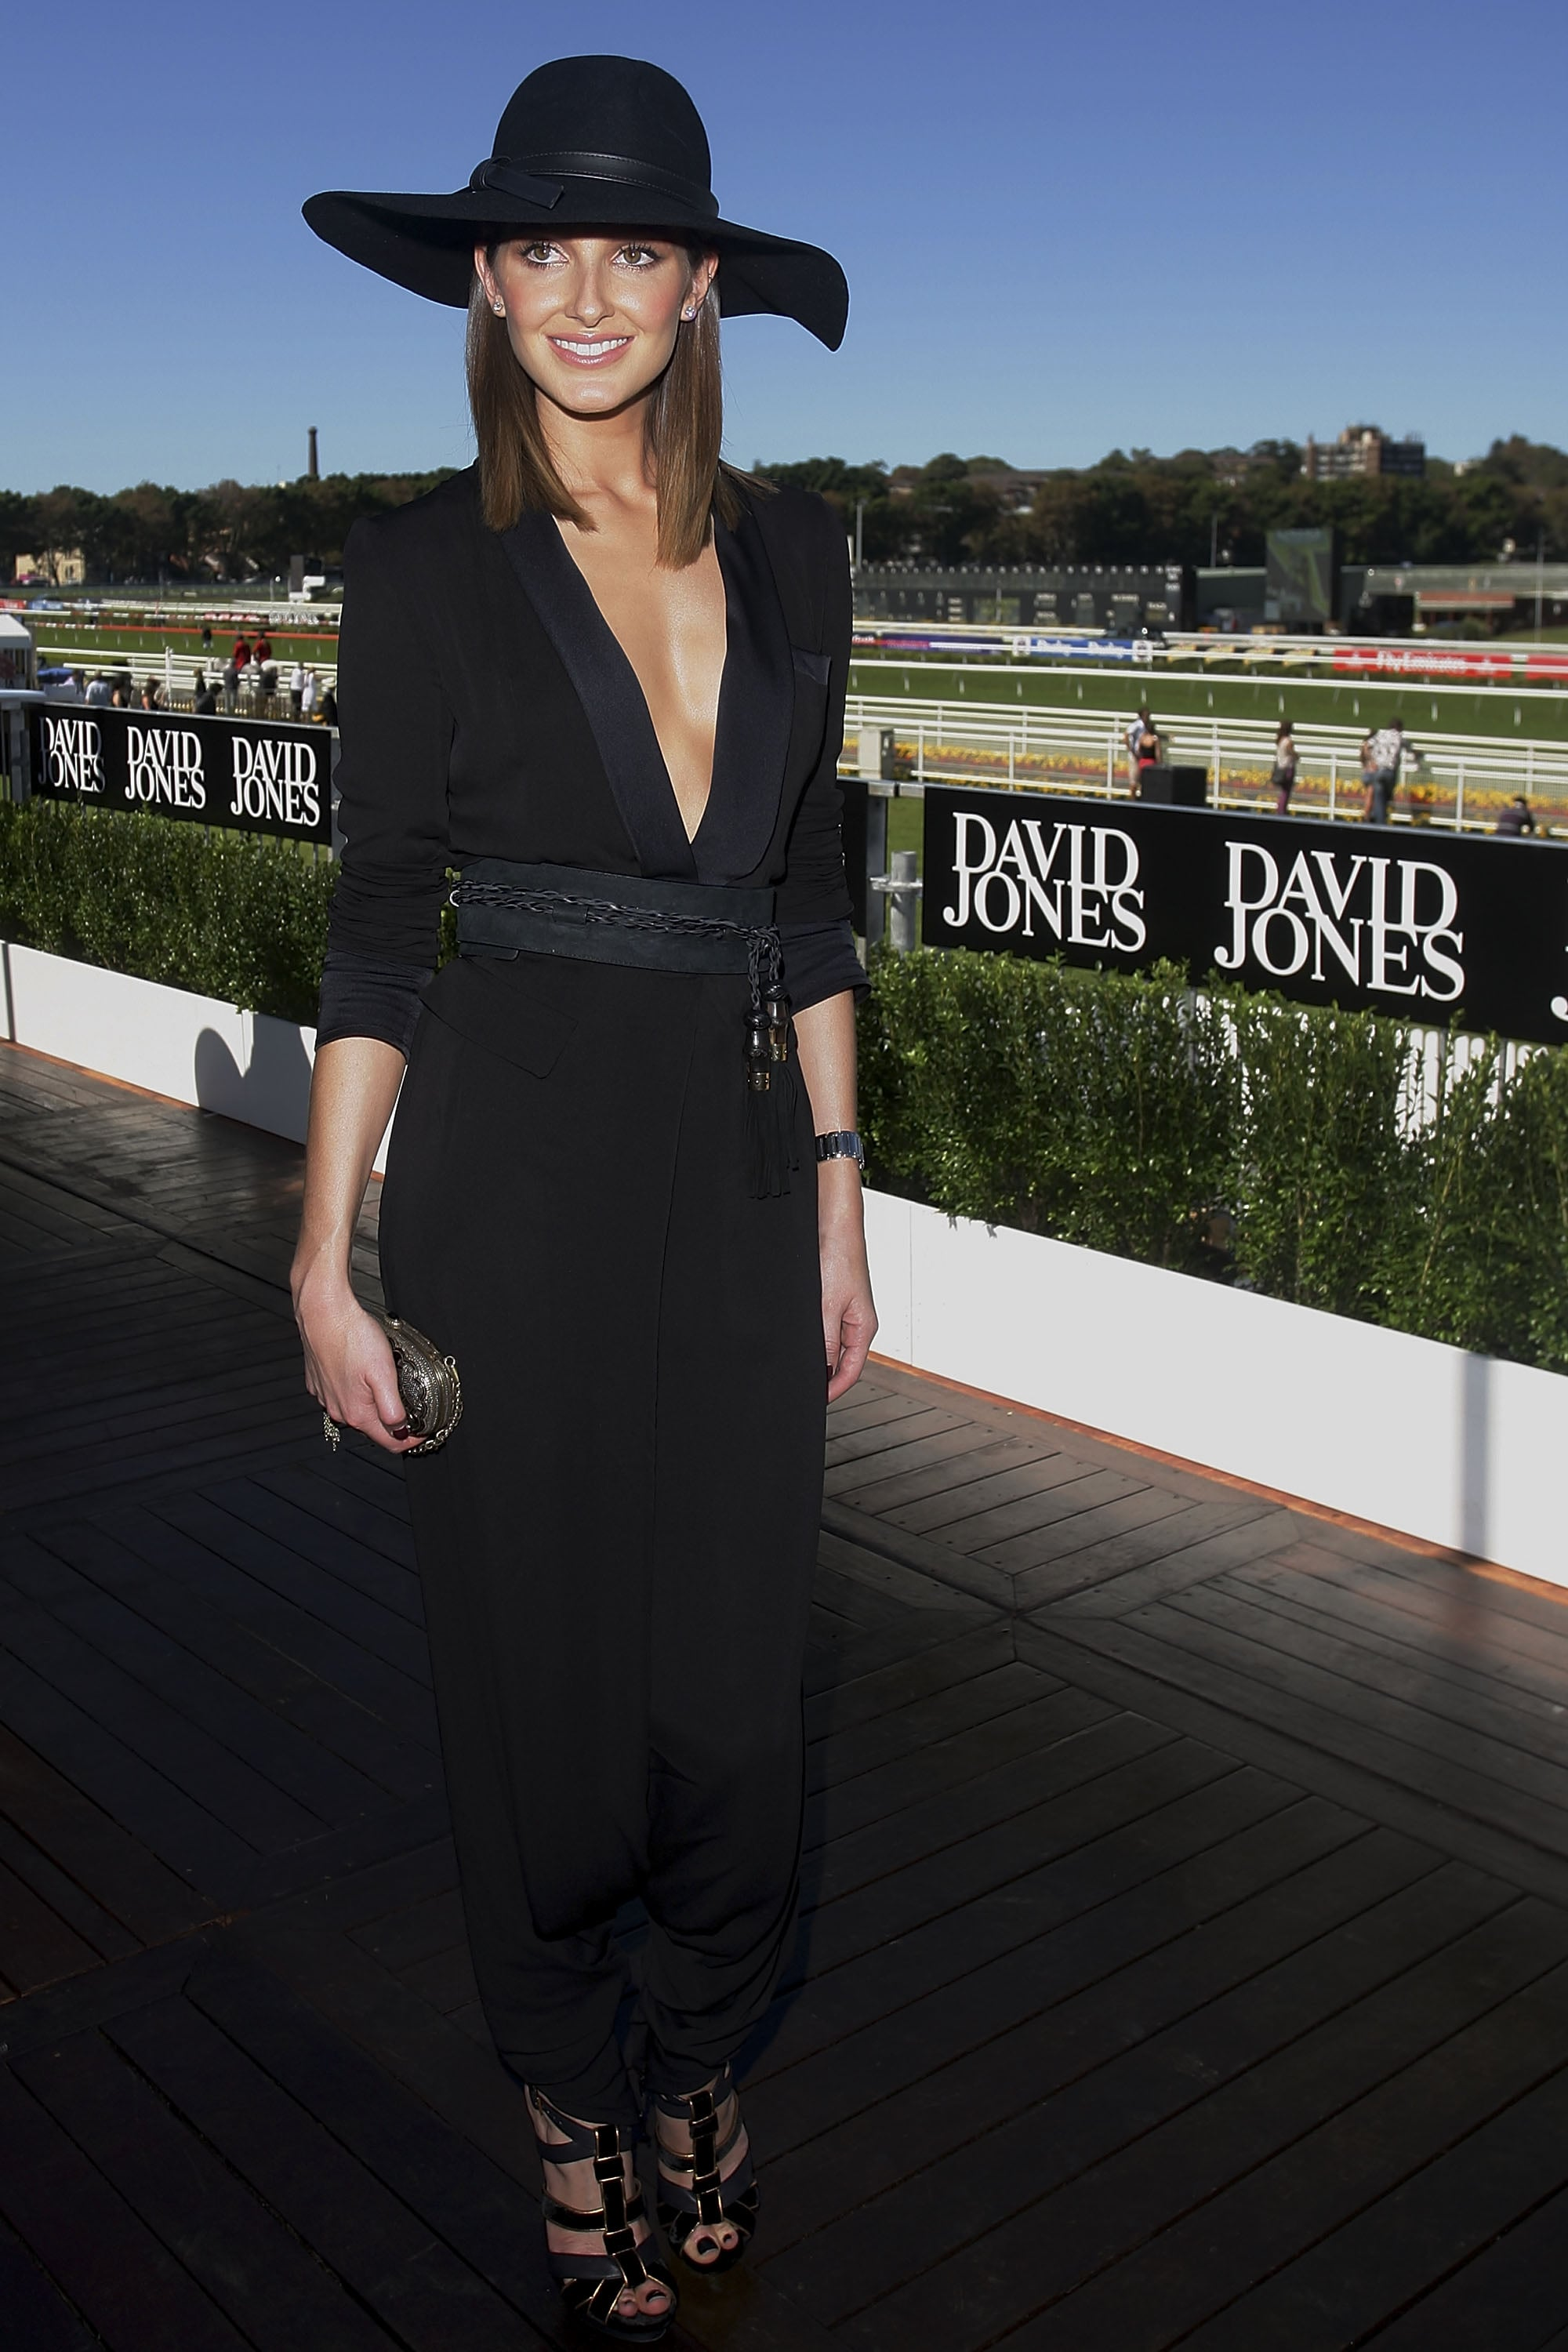 Kate Waterhouse looked extra chic in a plunging black jumpsuit and white brimmed hat. Modern but alluring!